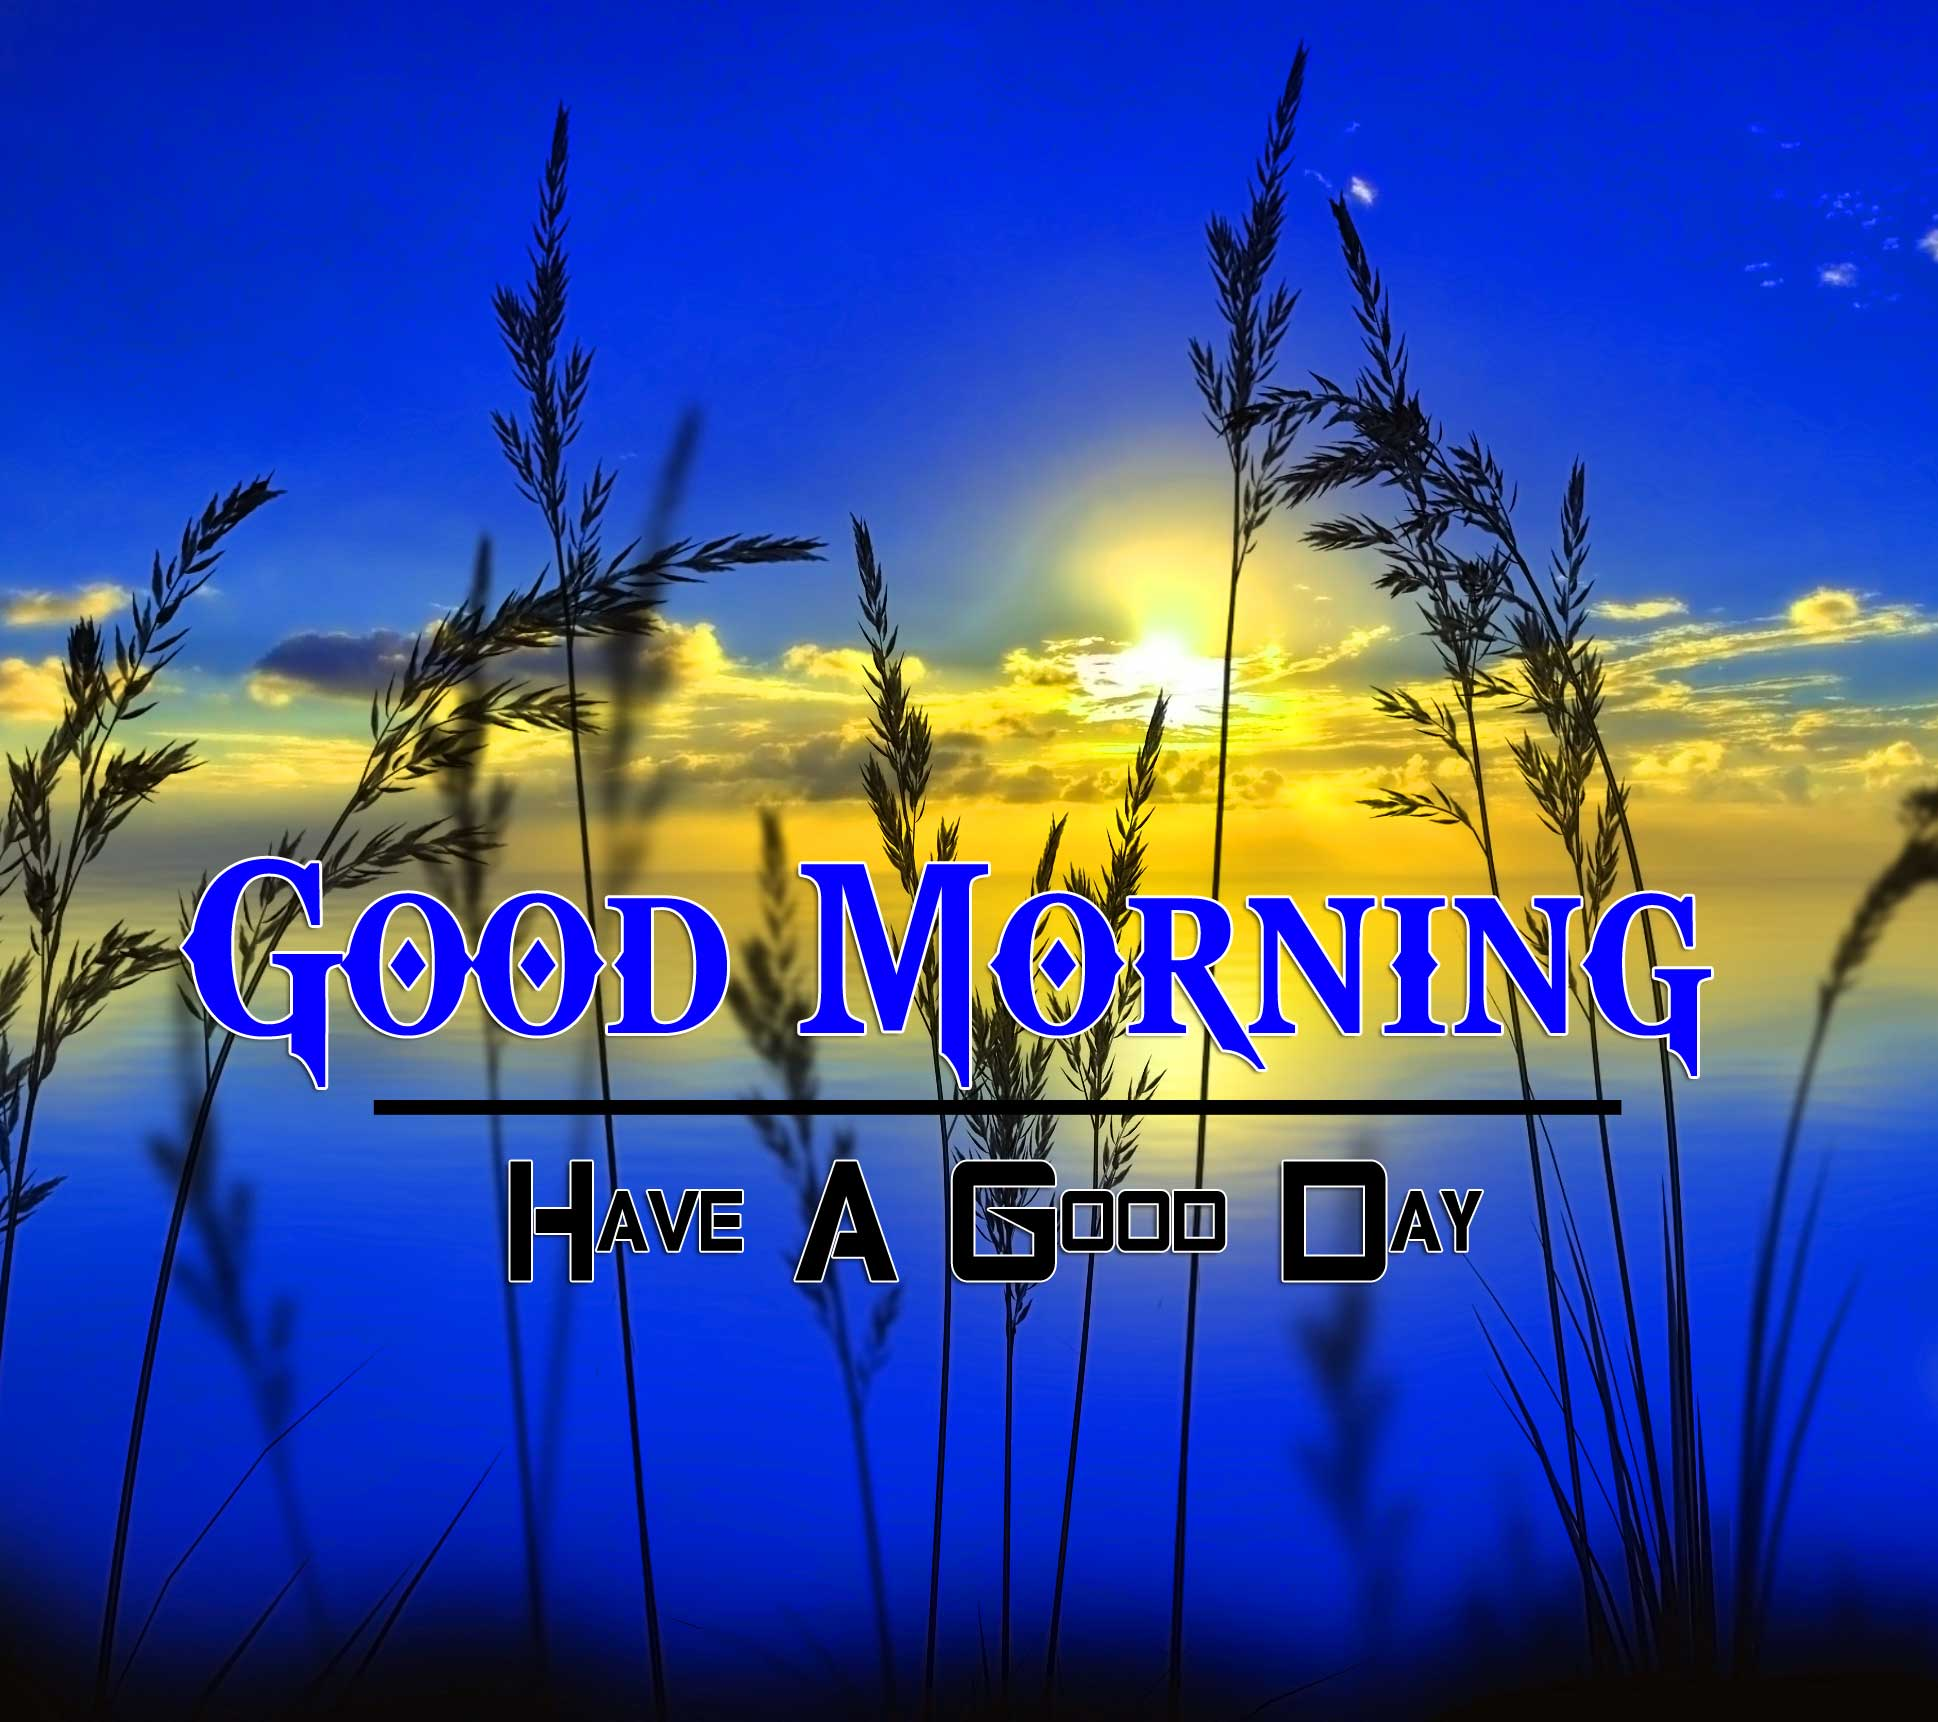 New Good Morning Wallpaper Images 5